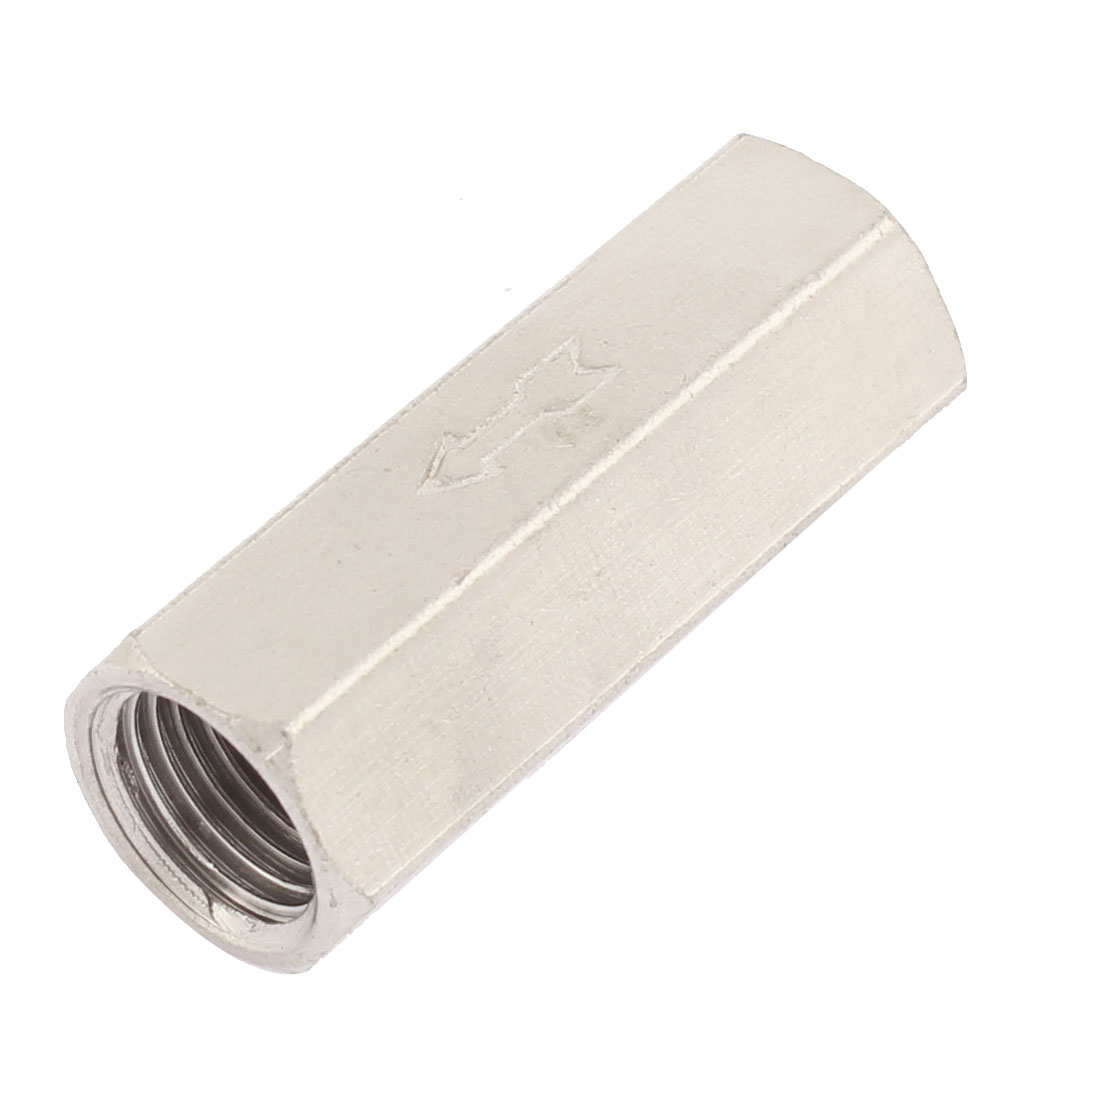 12mm 1/4BSP Female Thread Metal Air Full Port Non-return Straight Single One Way Check Valve